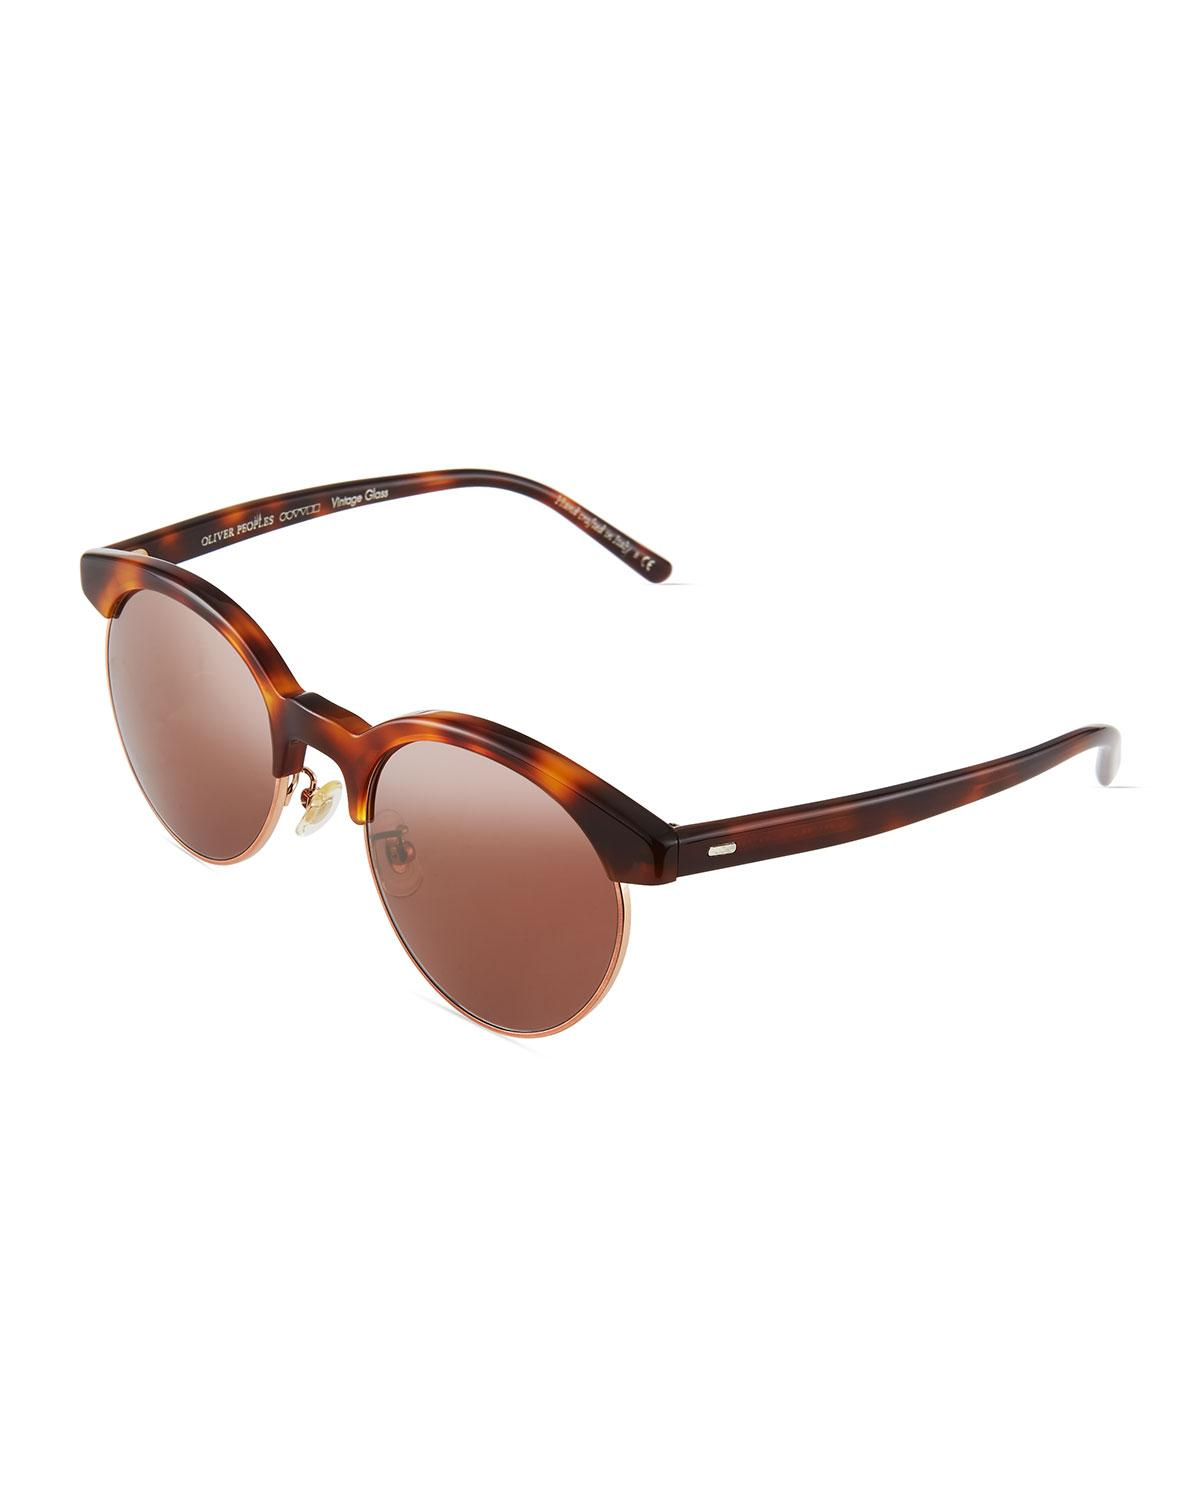 Oliver Peoples Ezelle 51 Semi-rimless Sunglasses In Rose Gold